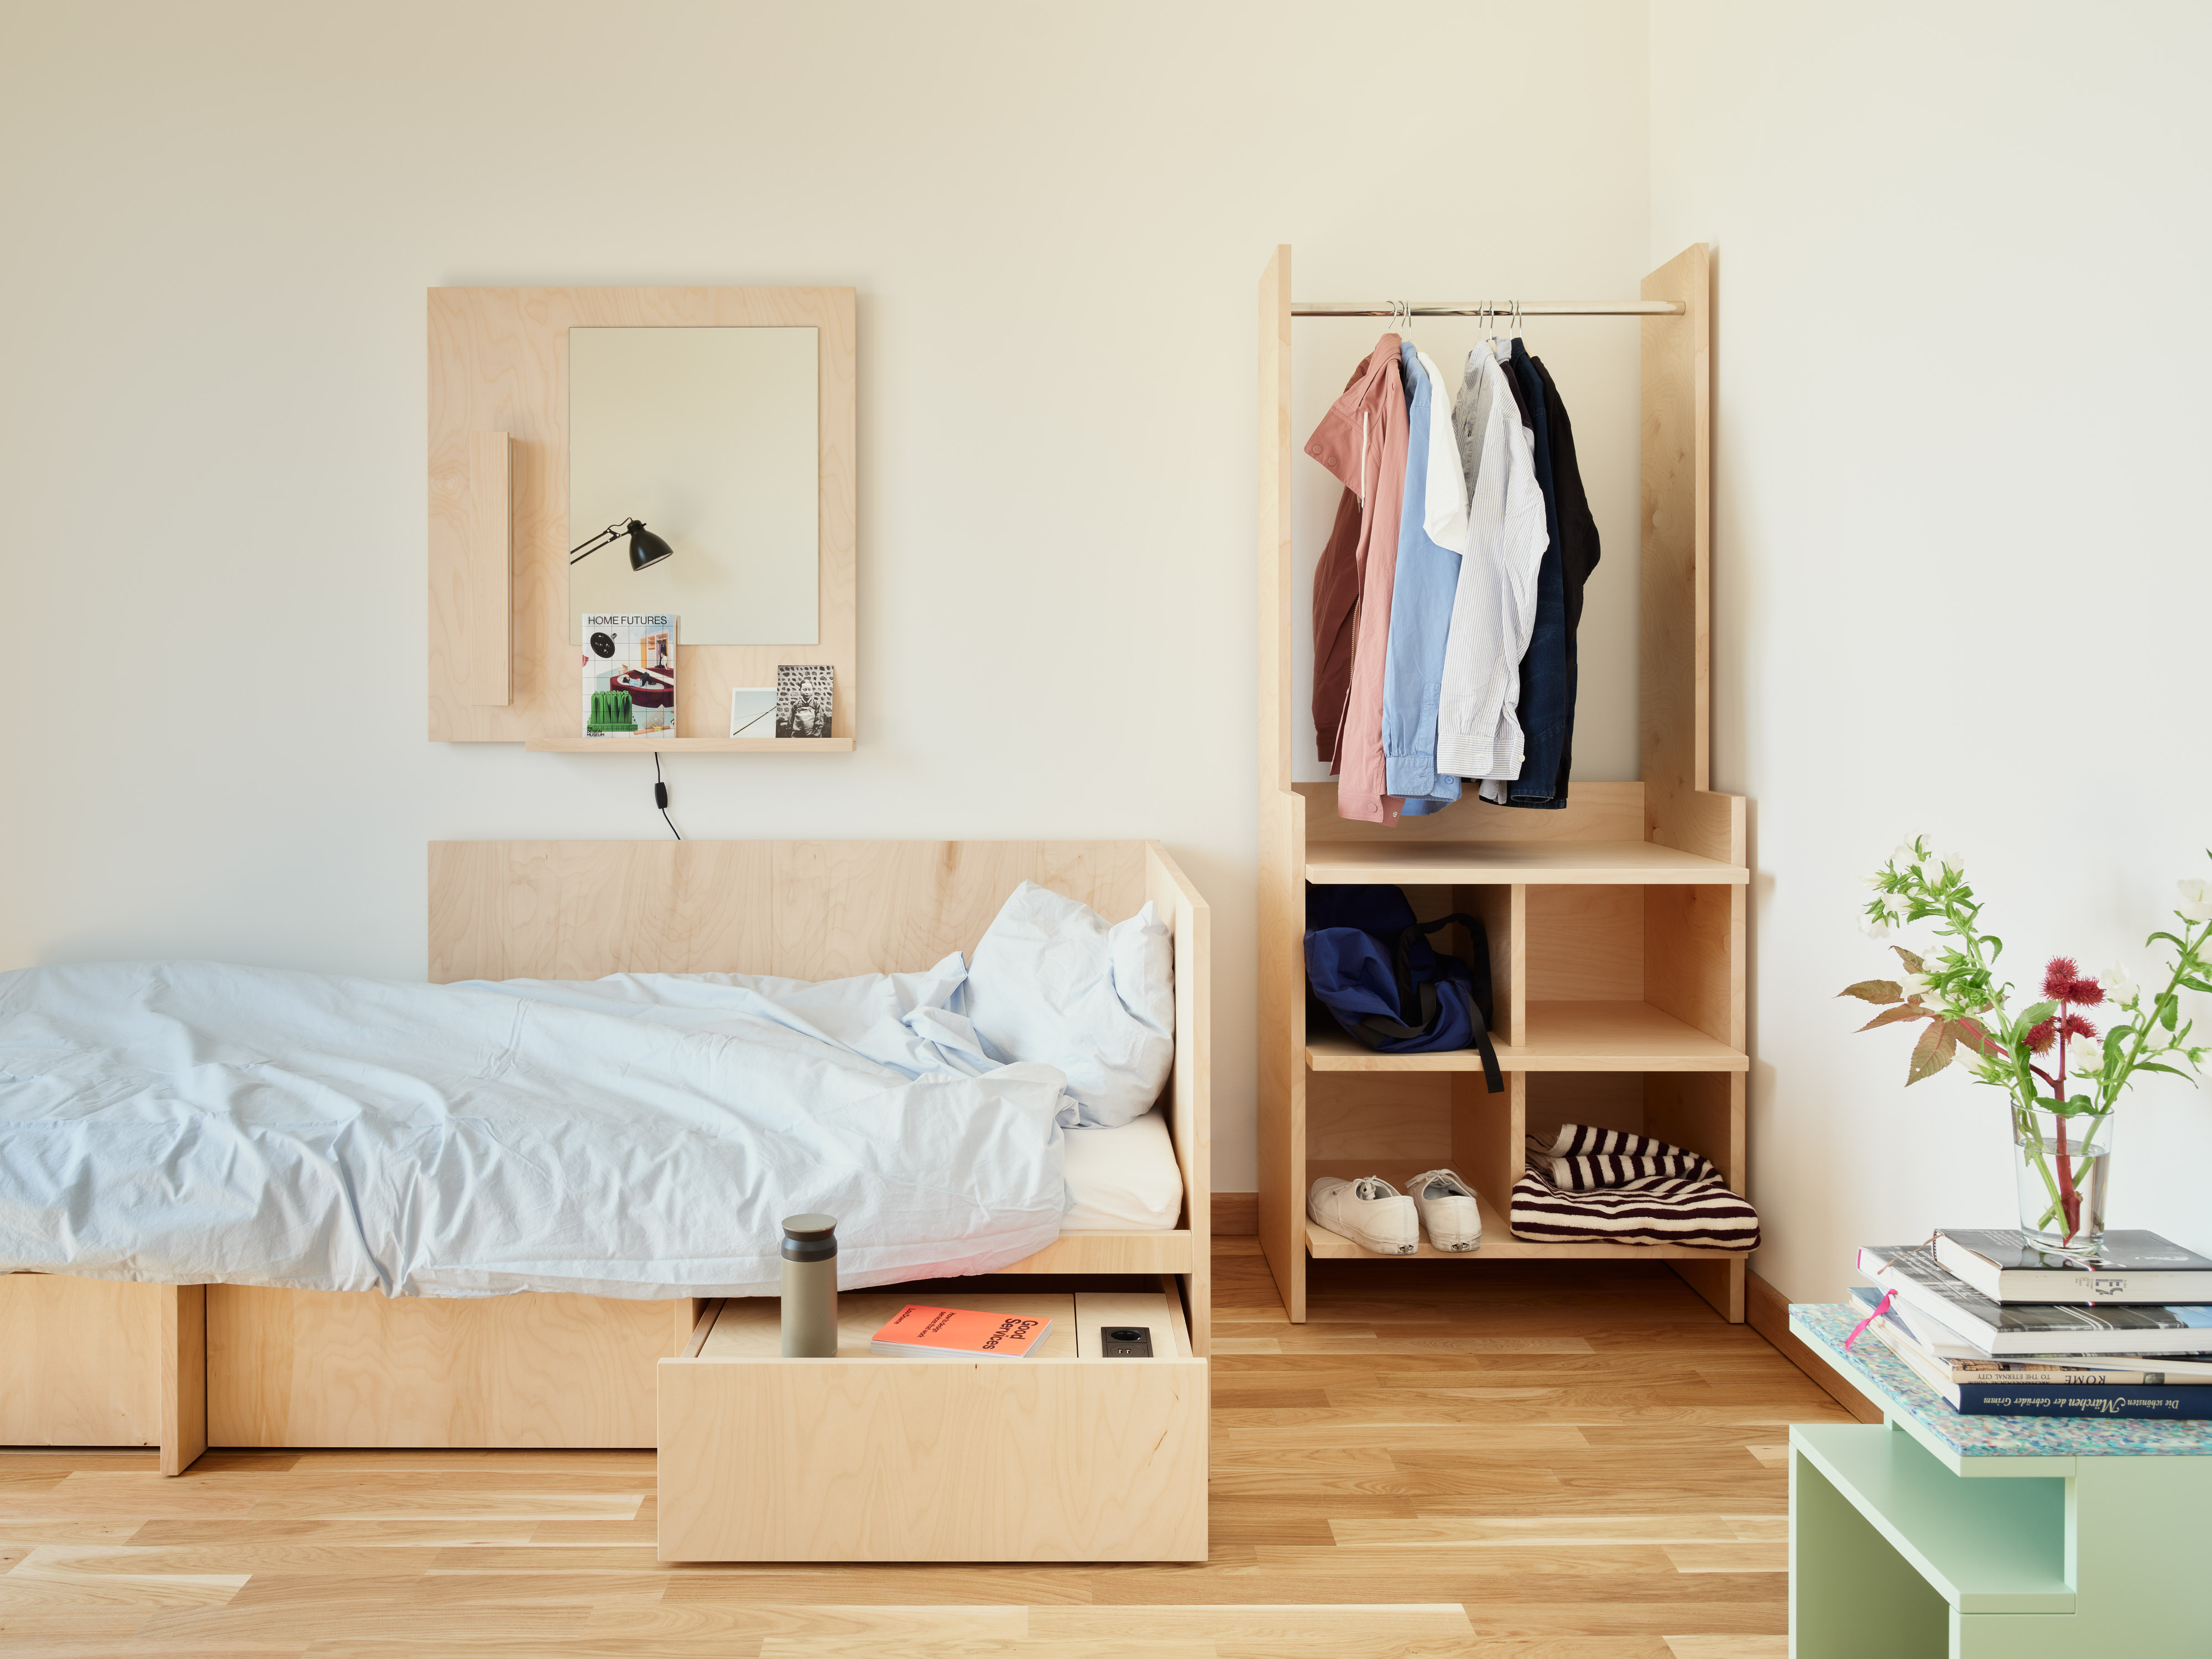 Bed and Wardrobe in Student Residence